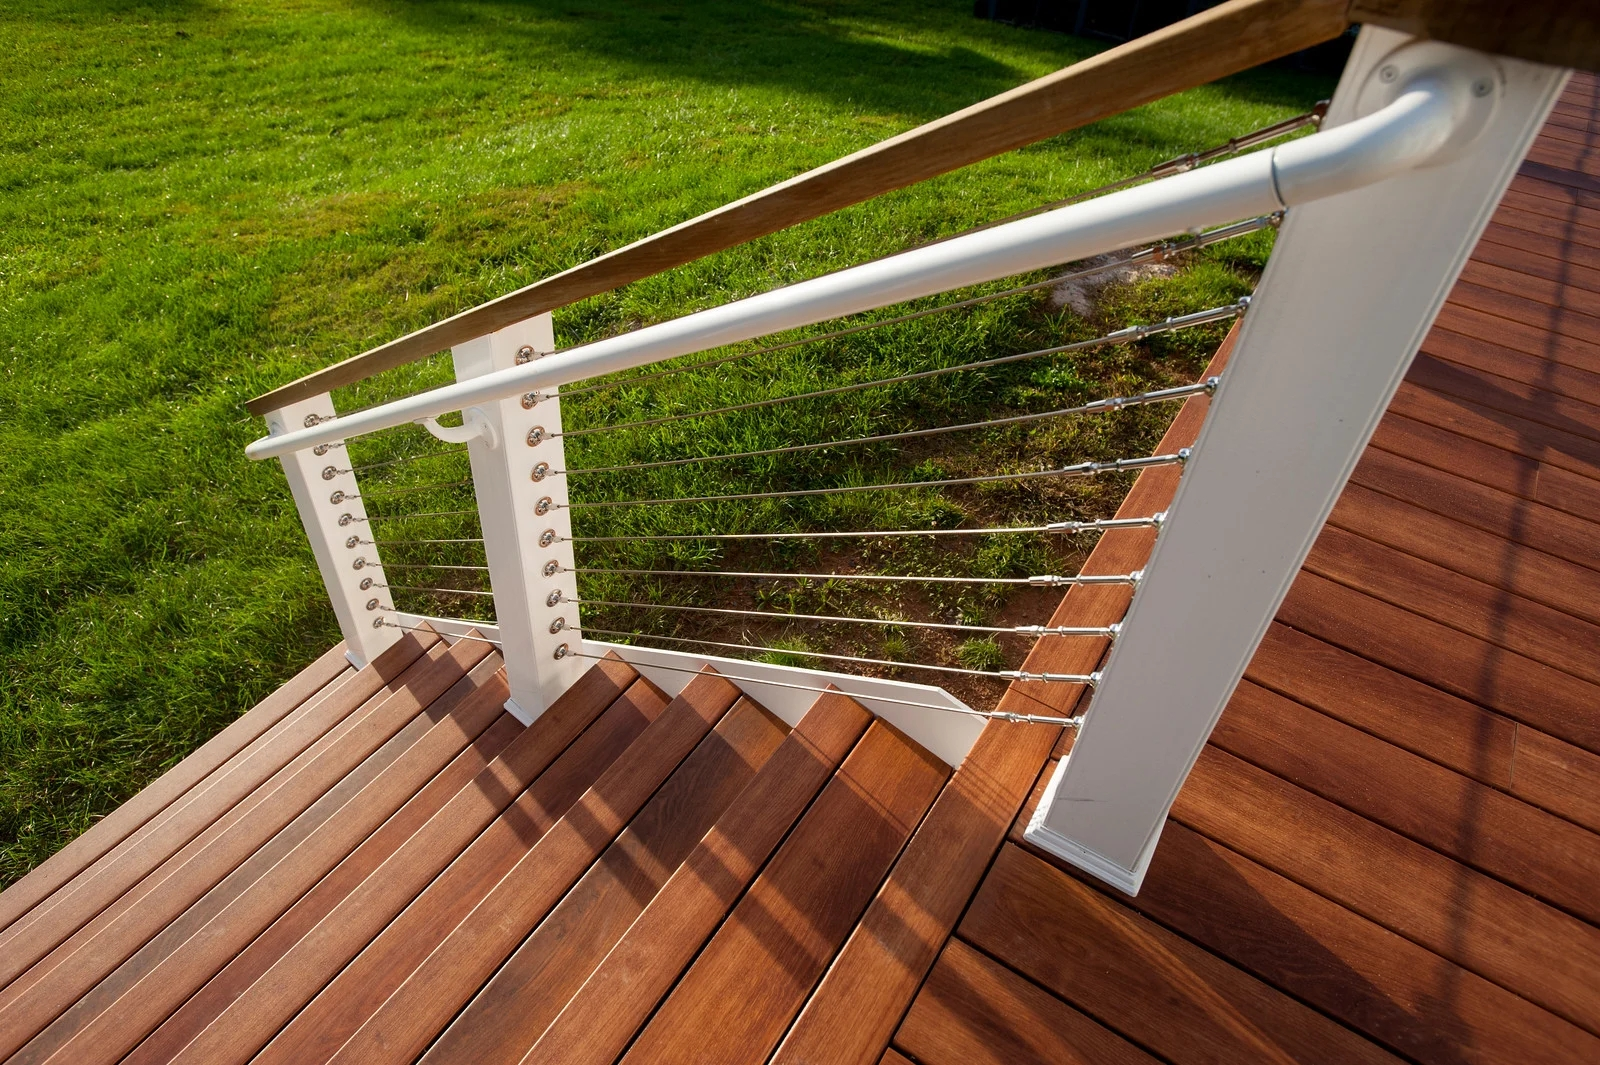 Steel Cable Deck Railings So Whats The Deal   Hog Wire Stair Railing   Deck Stainless   Wire Lattice Deck   Wire Panel   Privacy Panel Cable Railing   Modern Farmhouse